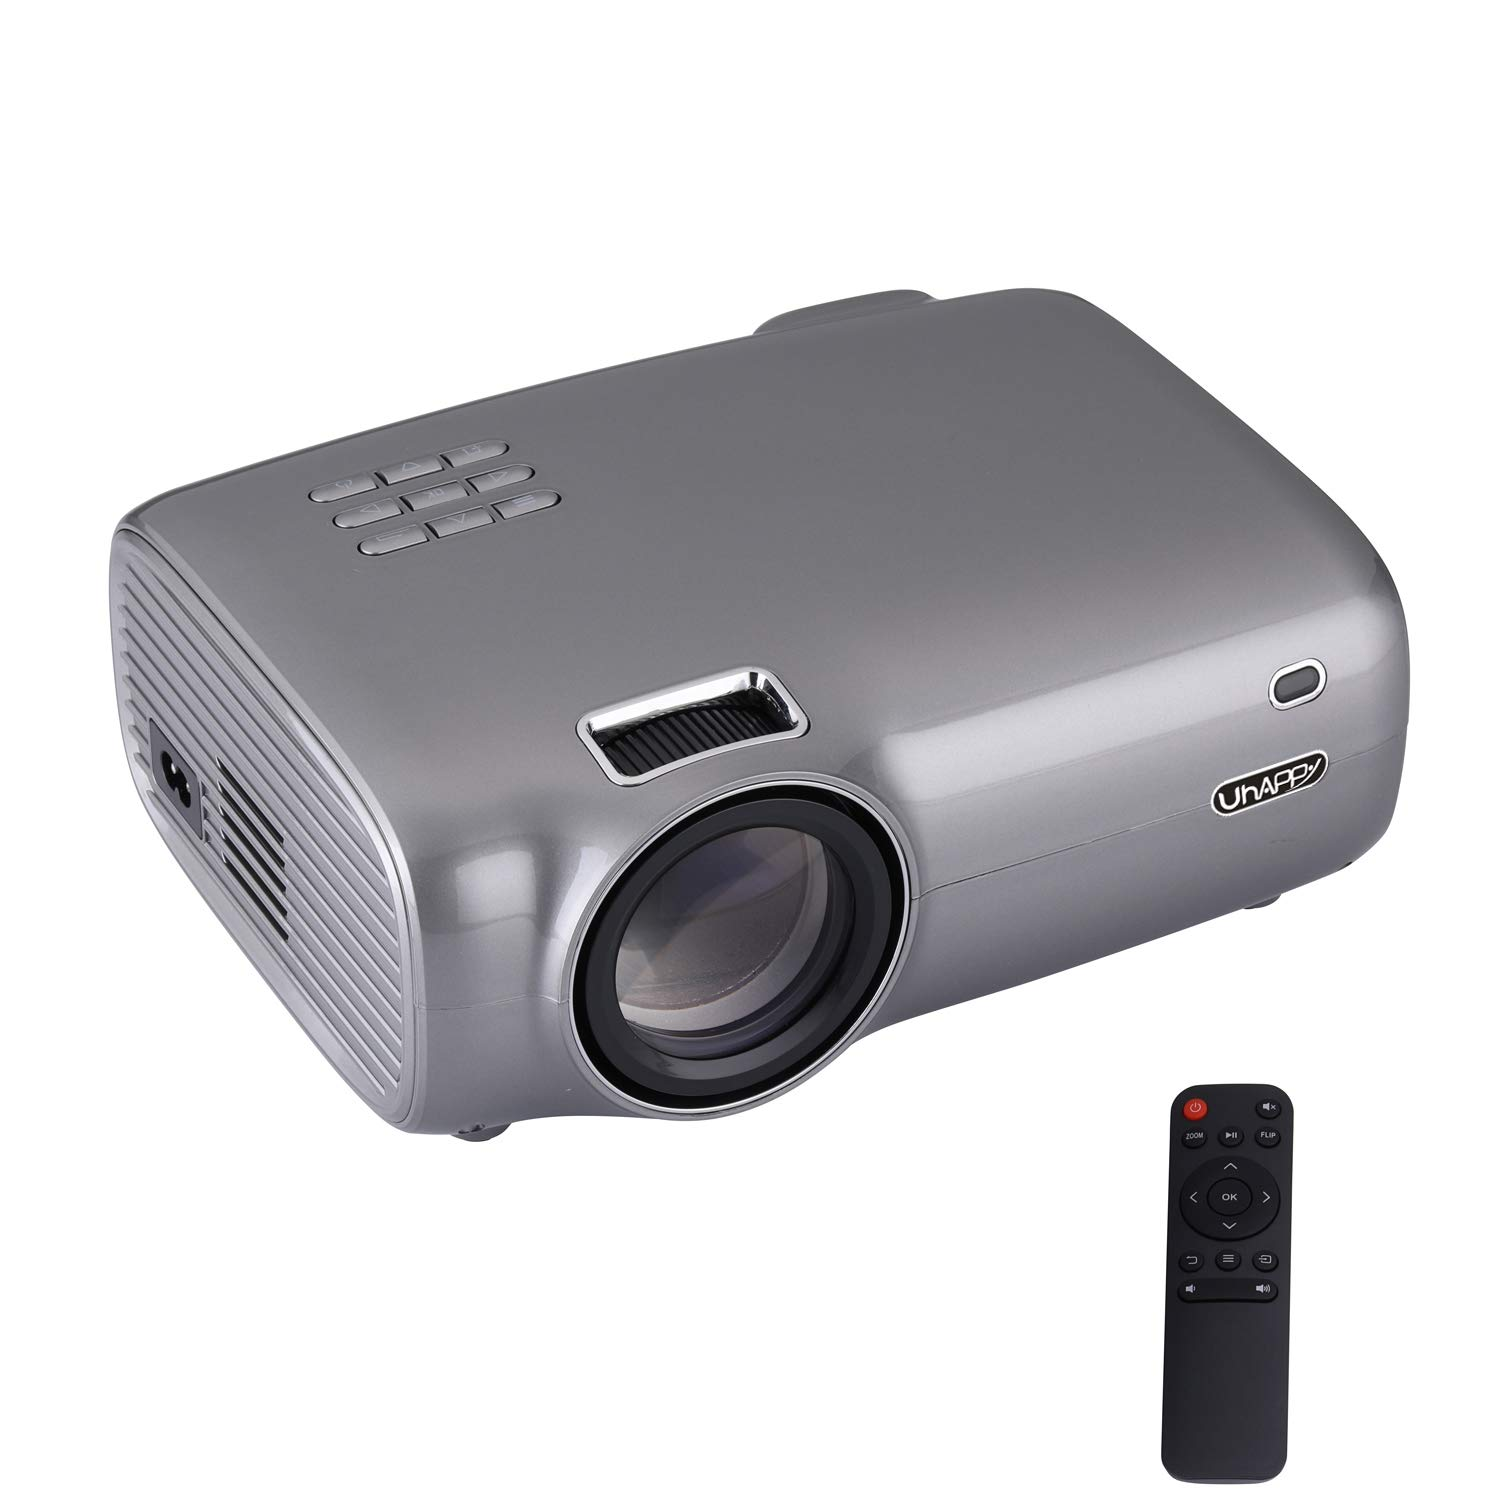 Amazon.com: Video Projector, Android 6.0 Smart Mini 720P LED ...